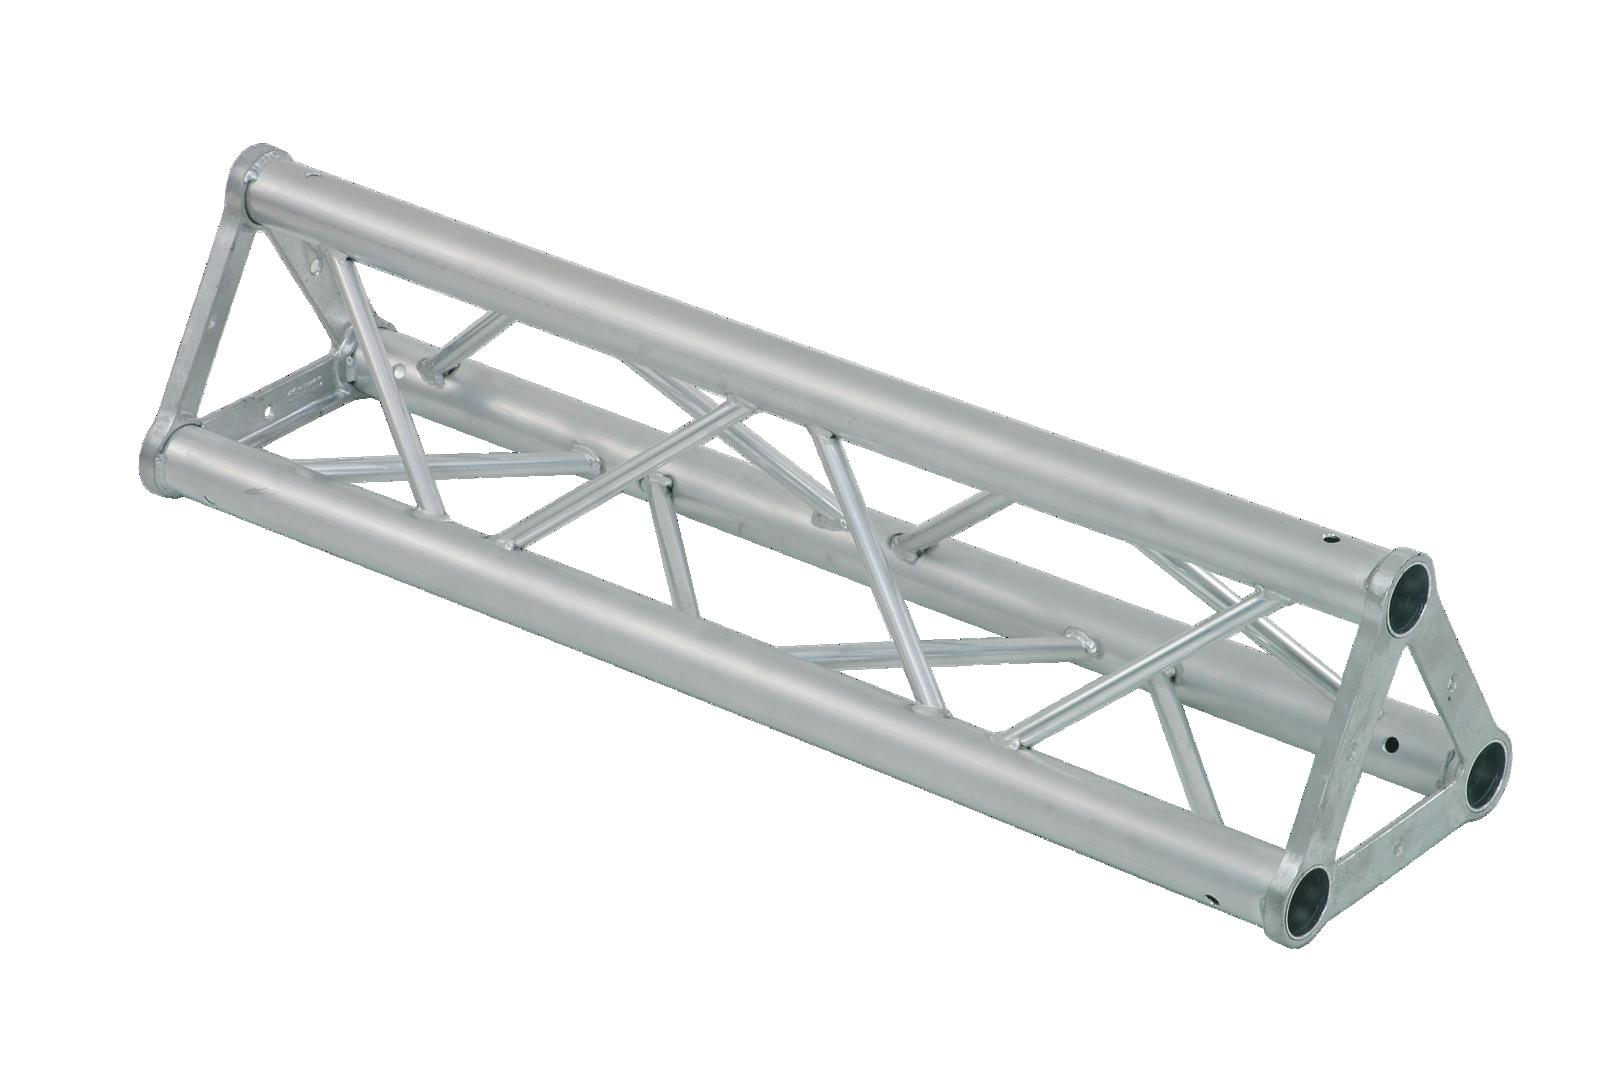 ALUTRUSS TRISYSTEM PST-1500 a 3 vie traverse